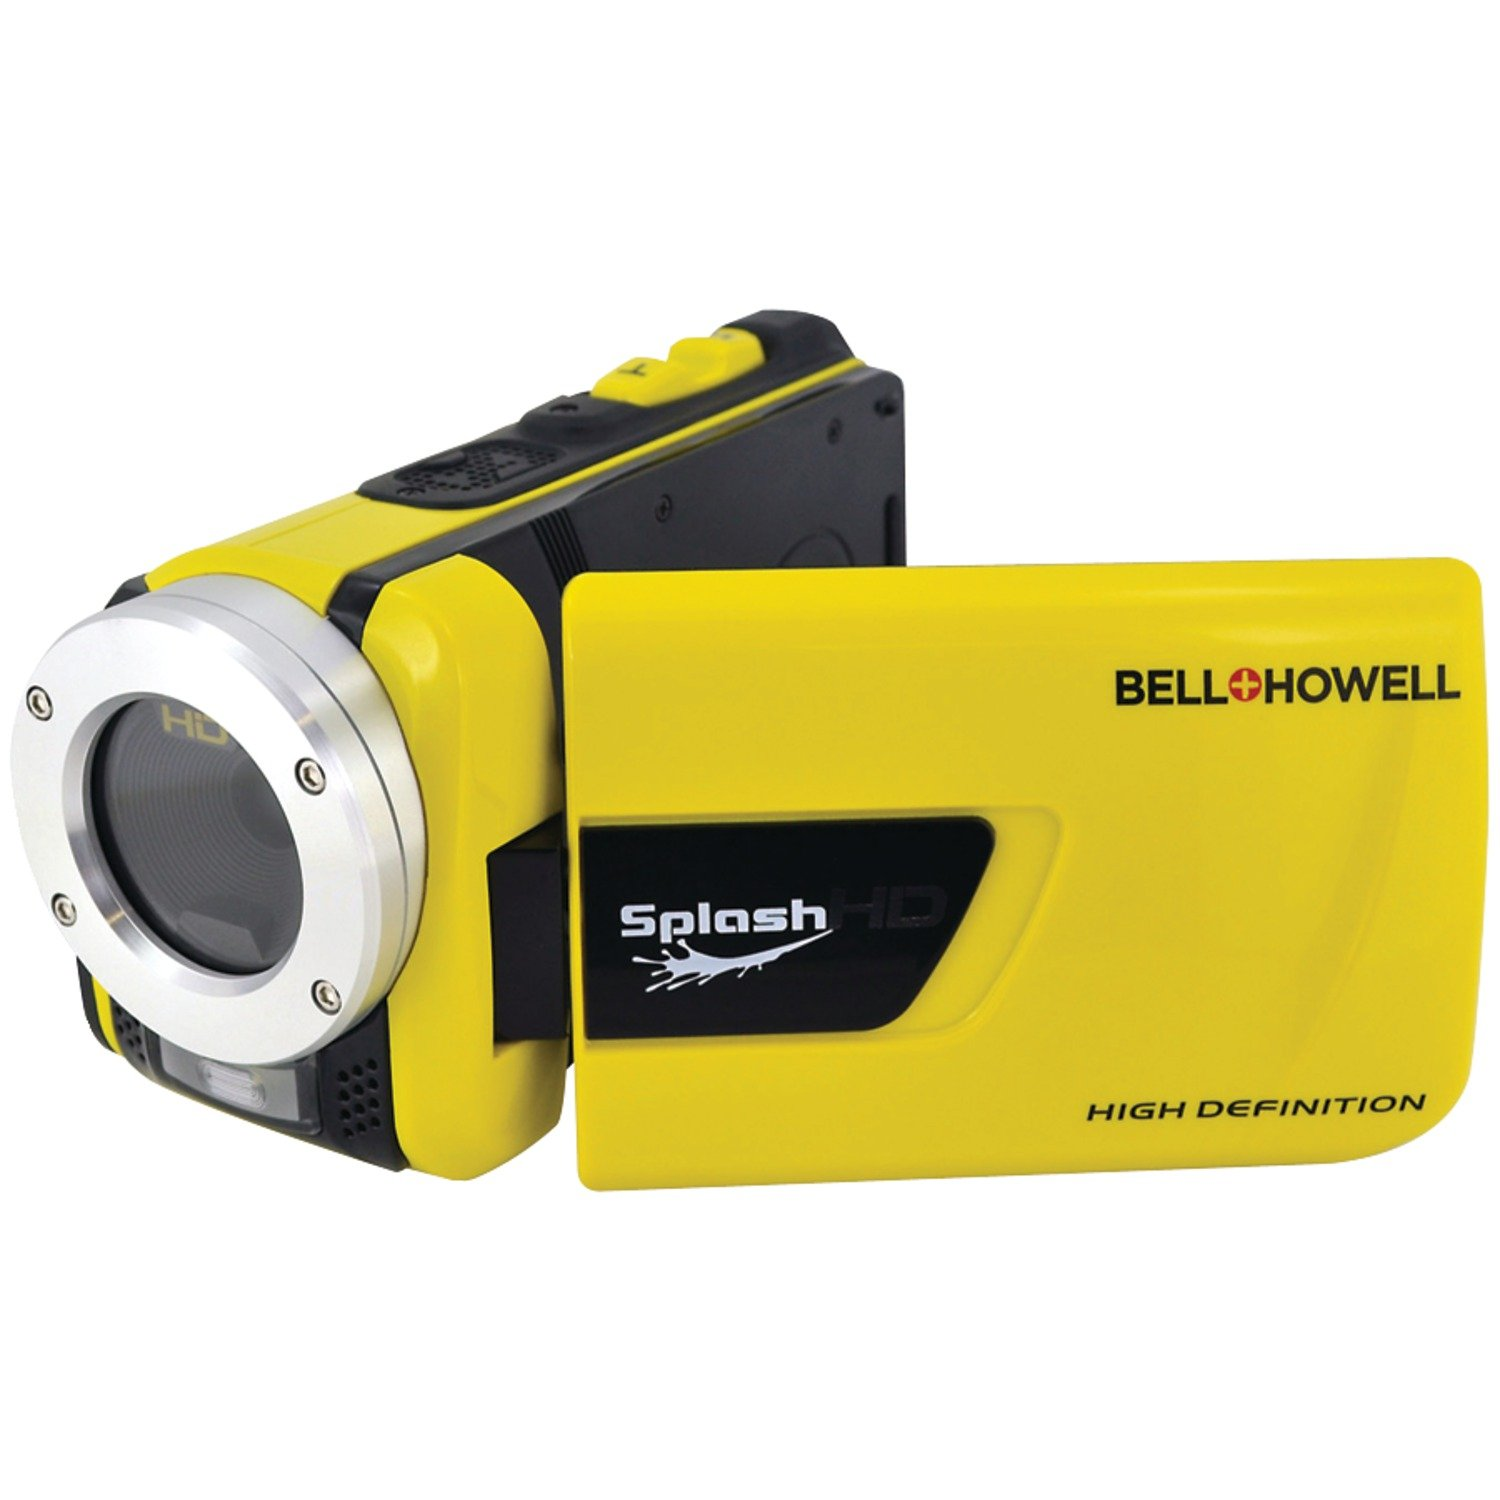 CDM product Bell+Howell Splash WV30HD-Y 1080p Full HD Digital Waterproof Video Camera with 1x Optical Zoom with 3.0-Inch LCD Screen, Yellow big image